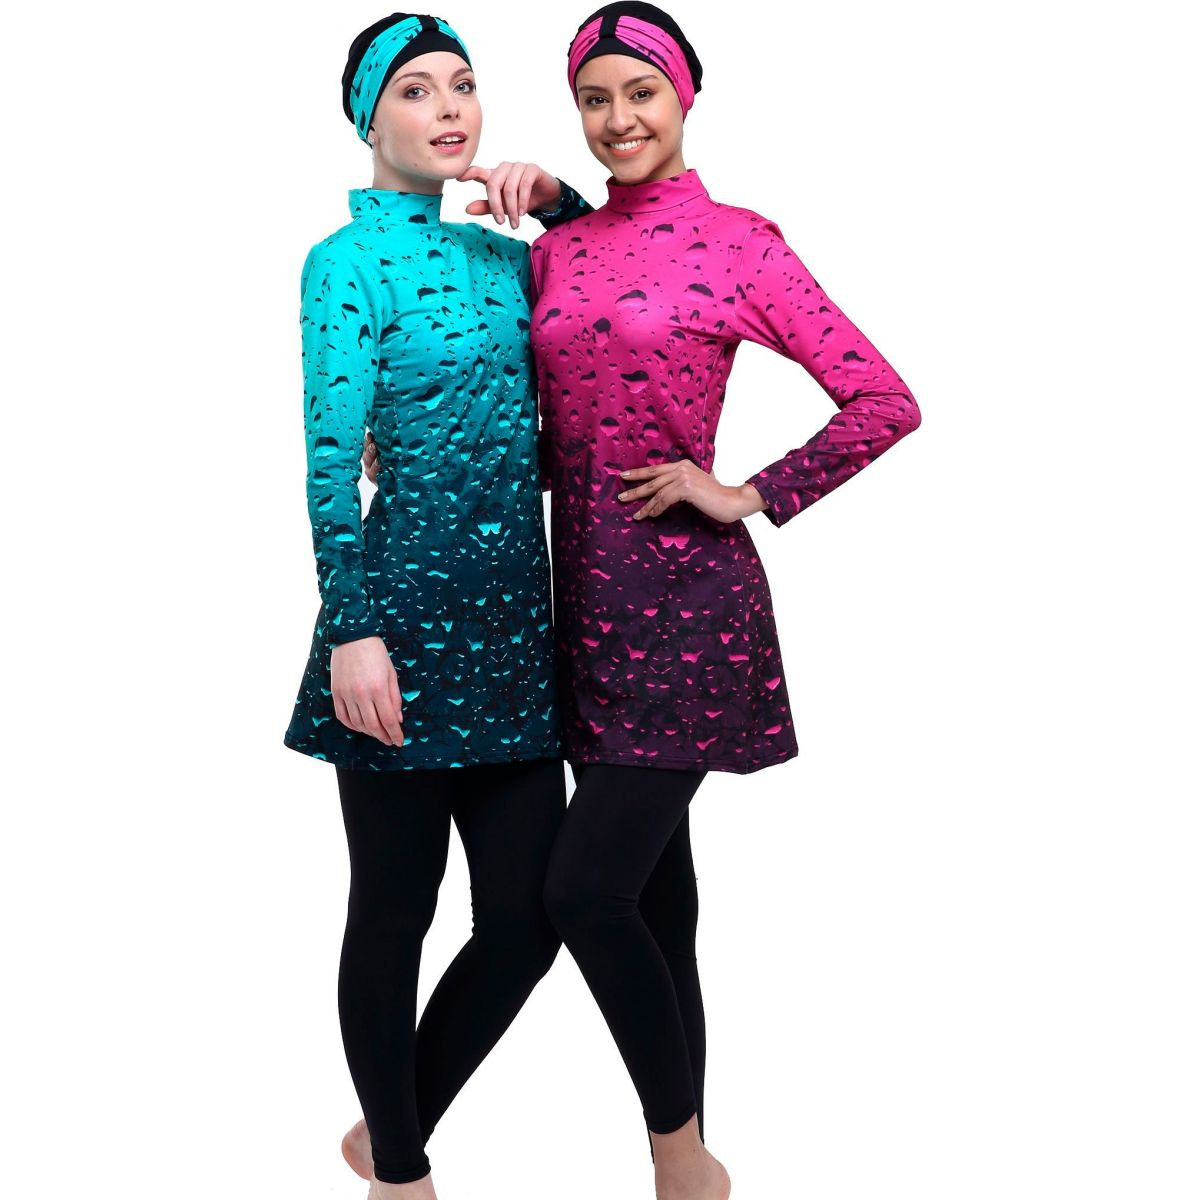 Argisa 7542 Long Sleeve Board Patterned Full Hijab Swimwear 36-44 Muslim Hijab Islamic Swimsuit Burkini Turkey Full Cover Swim Hat